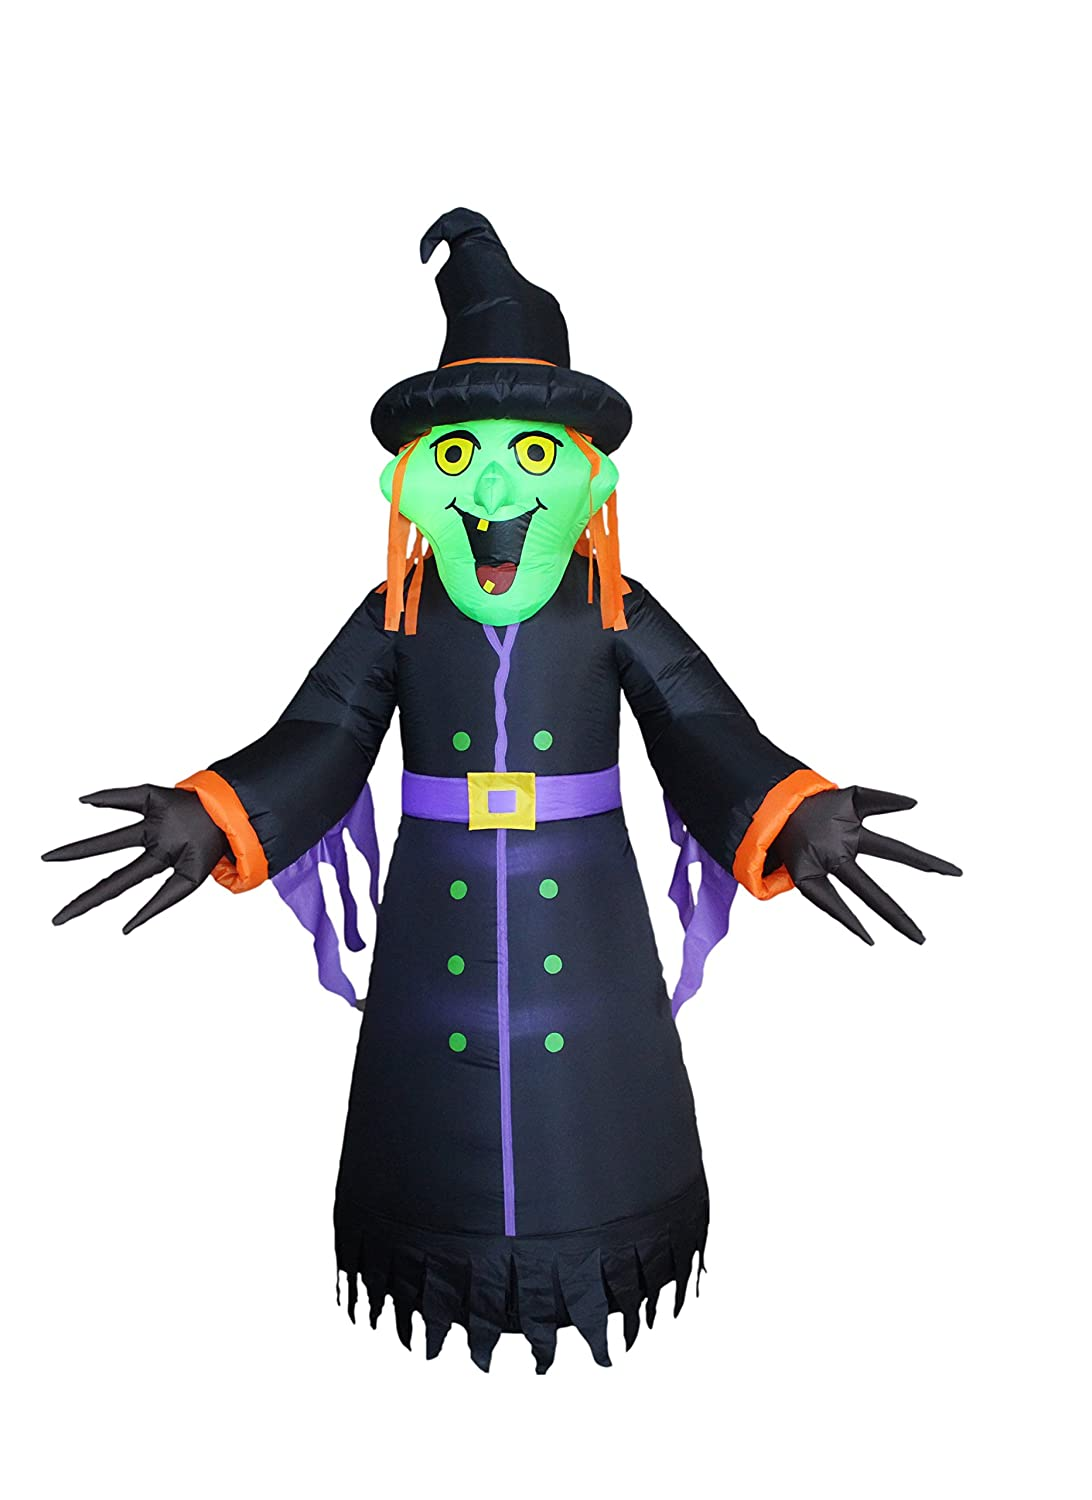 8 Foot Tall Halloween Inflatable Witch New Party Yard Decoration by BZB Goods B01FVQNKJU 15210